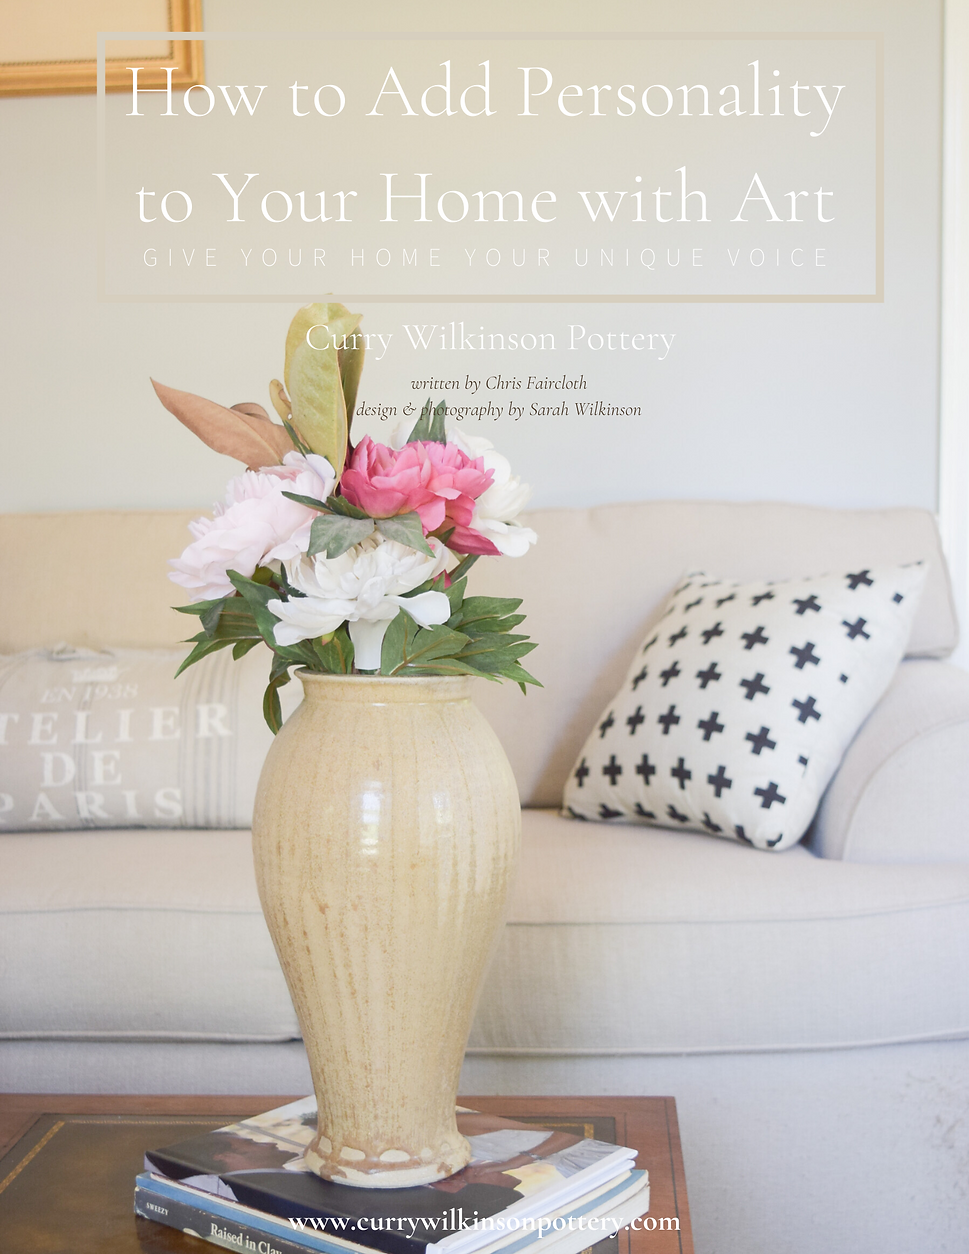 How to Add Personality to Your Home with